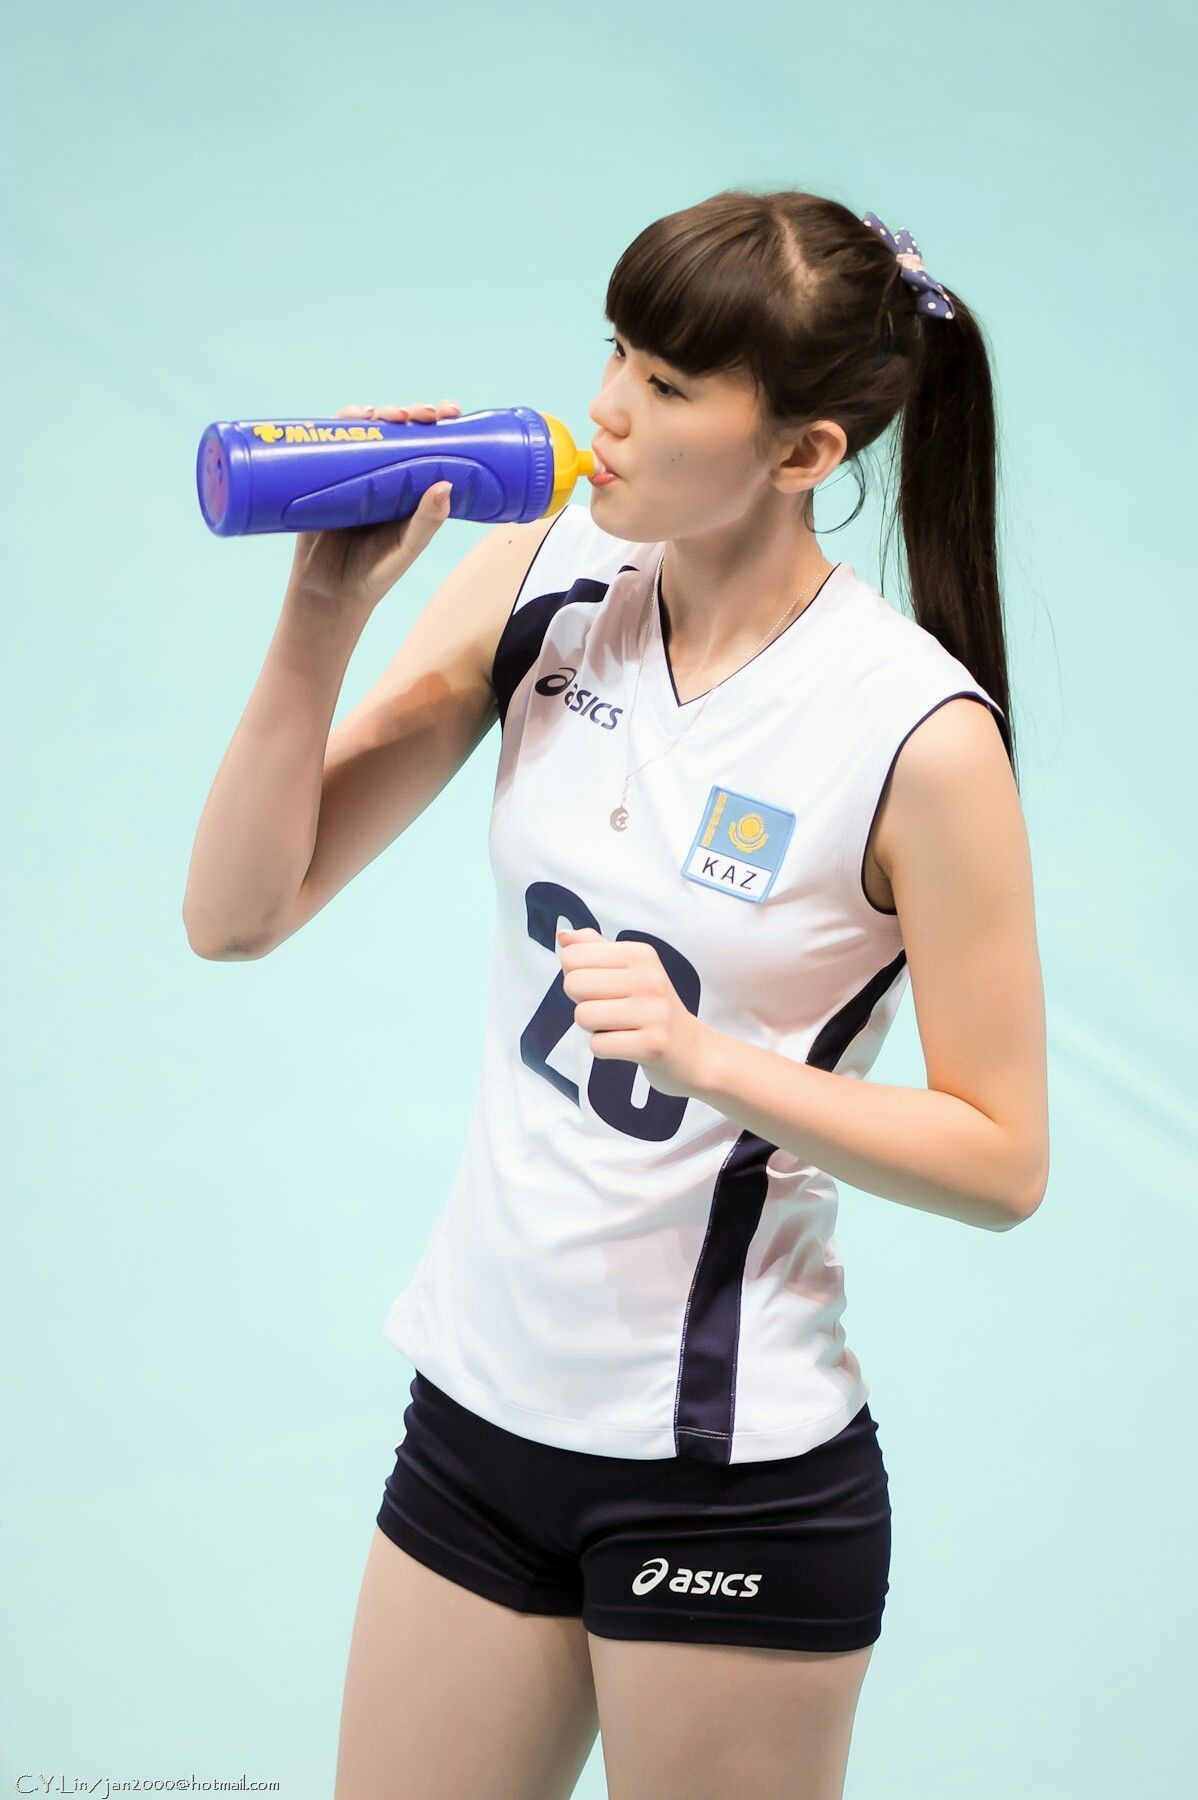 Kazakhstan Volleyball Player Sabina Asics In 2020 Volleyball Players Women Volleyball Beautiful Athletes